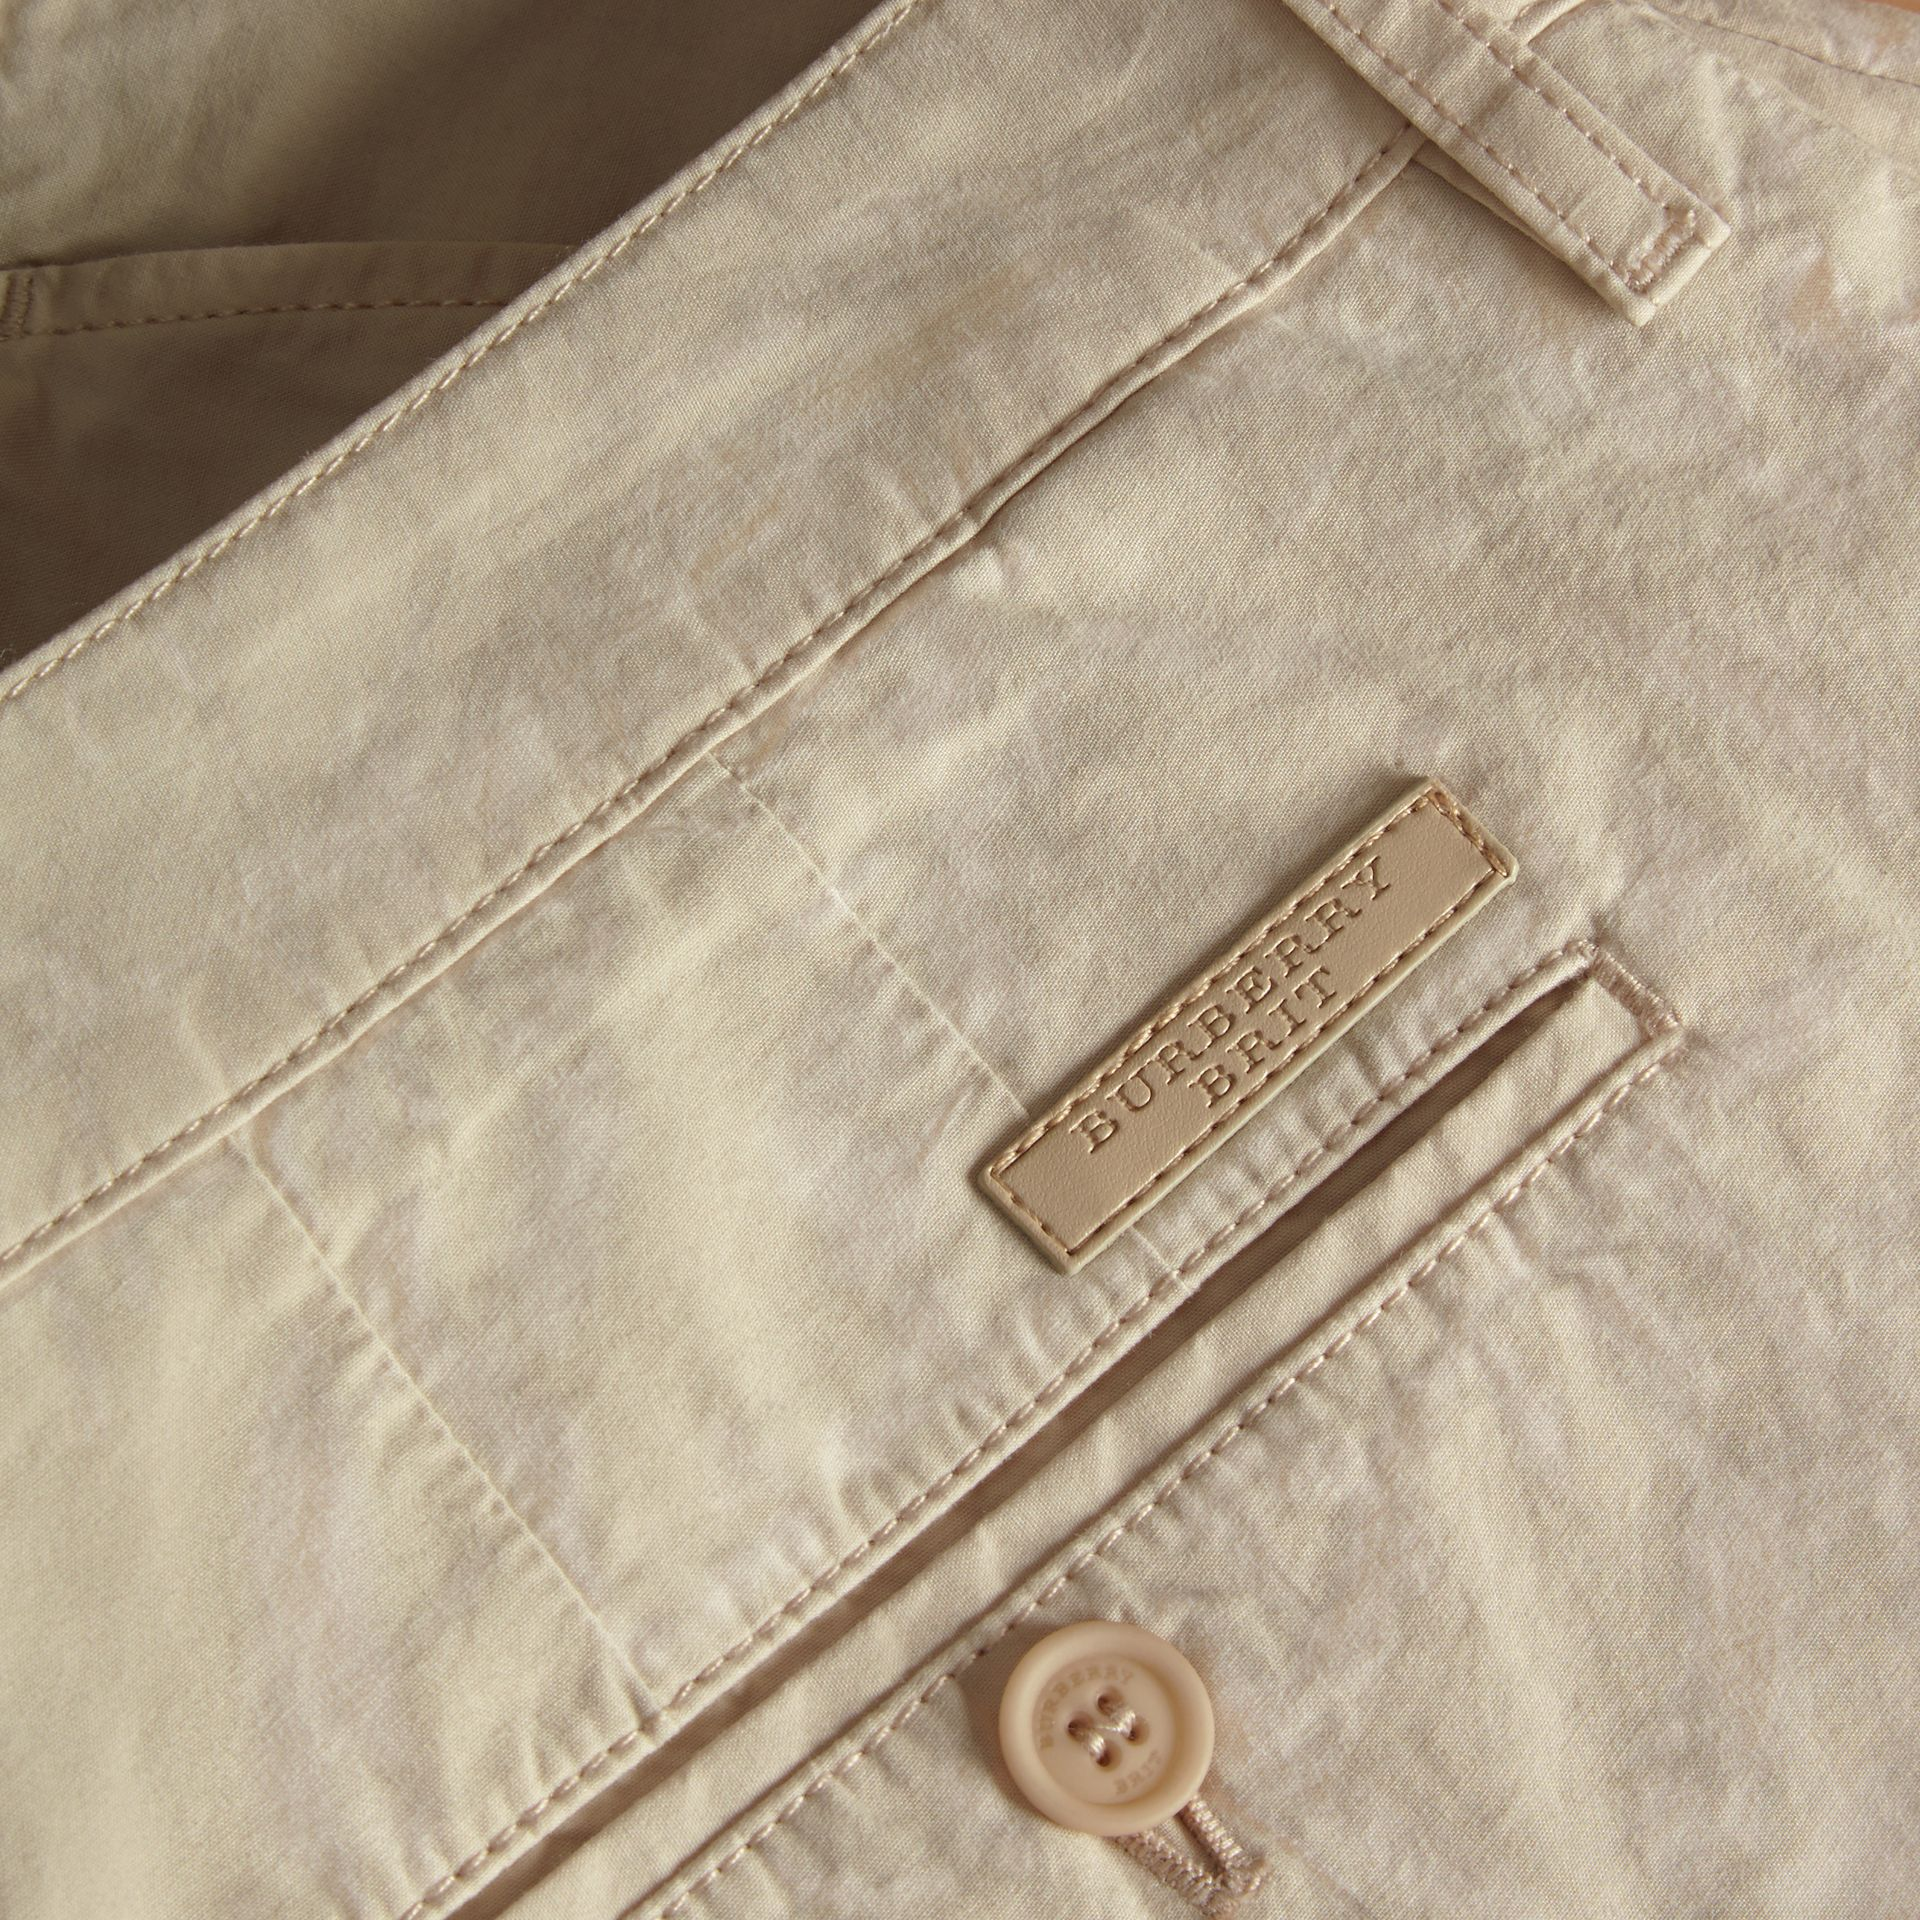 Cotton Poplin Chino Shorts in Stone - Men | Burberry - gallery image 2